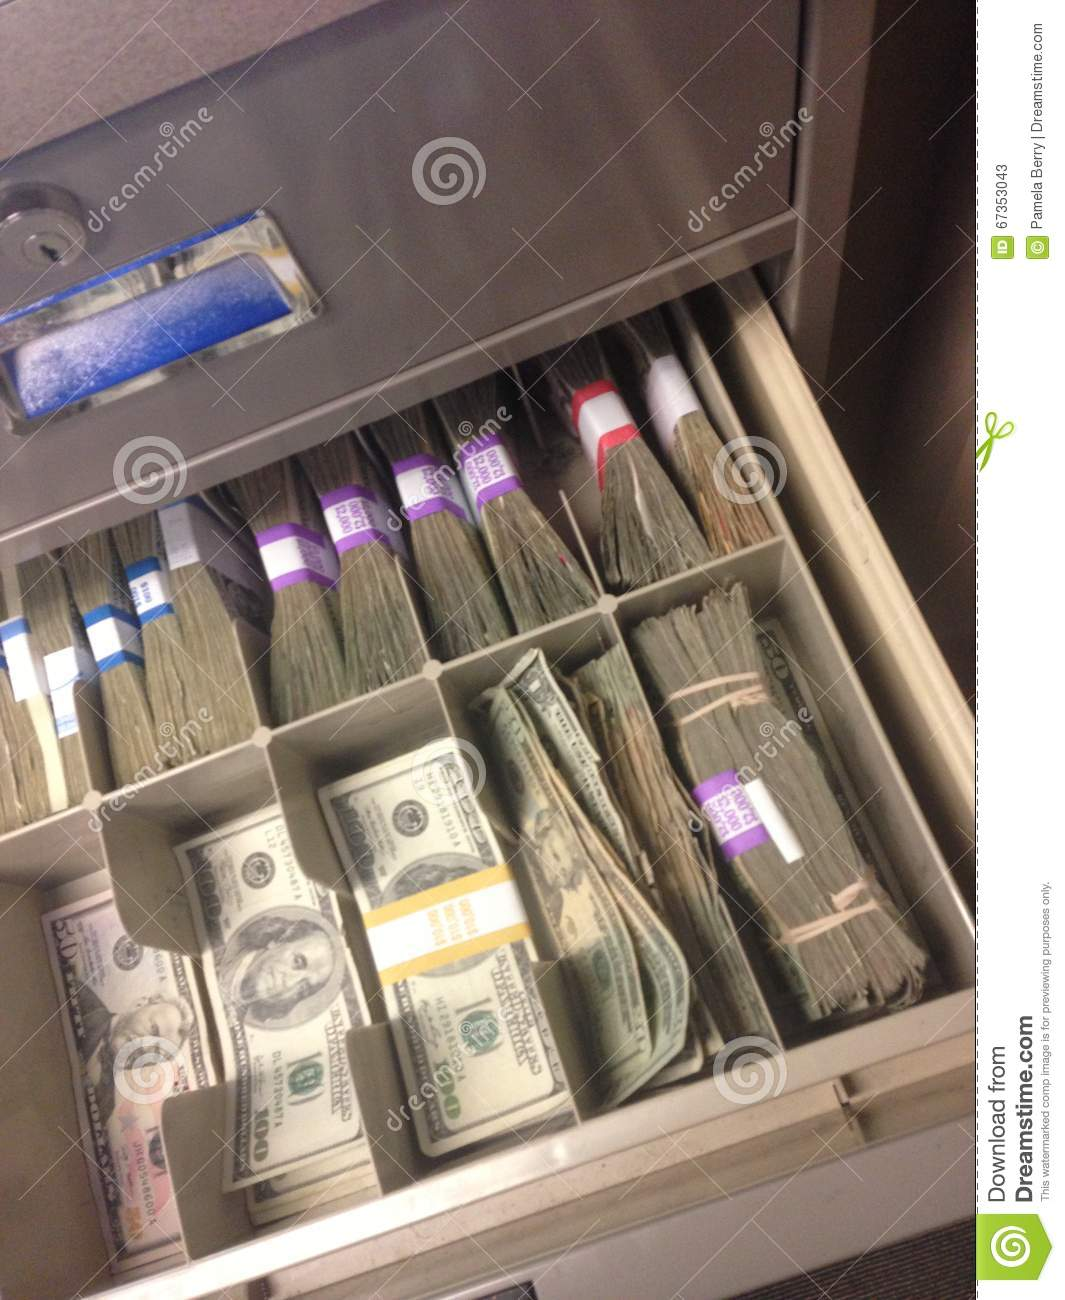 crs drawers width getimage cash ashx model drawer image money